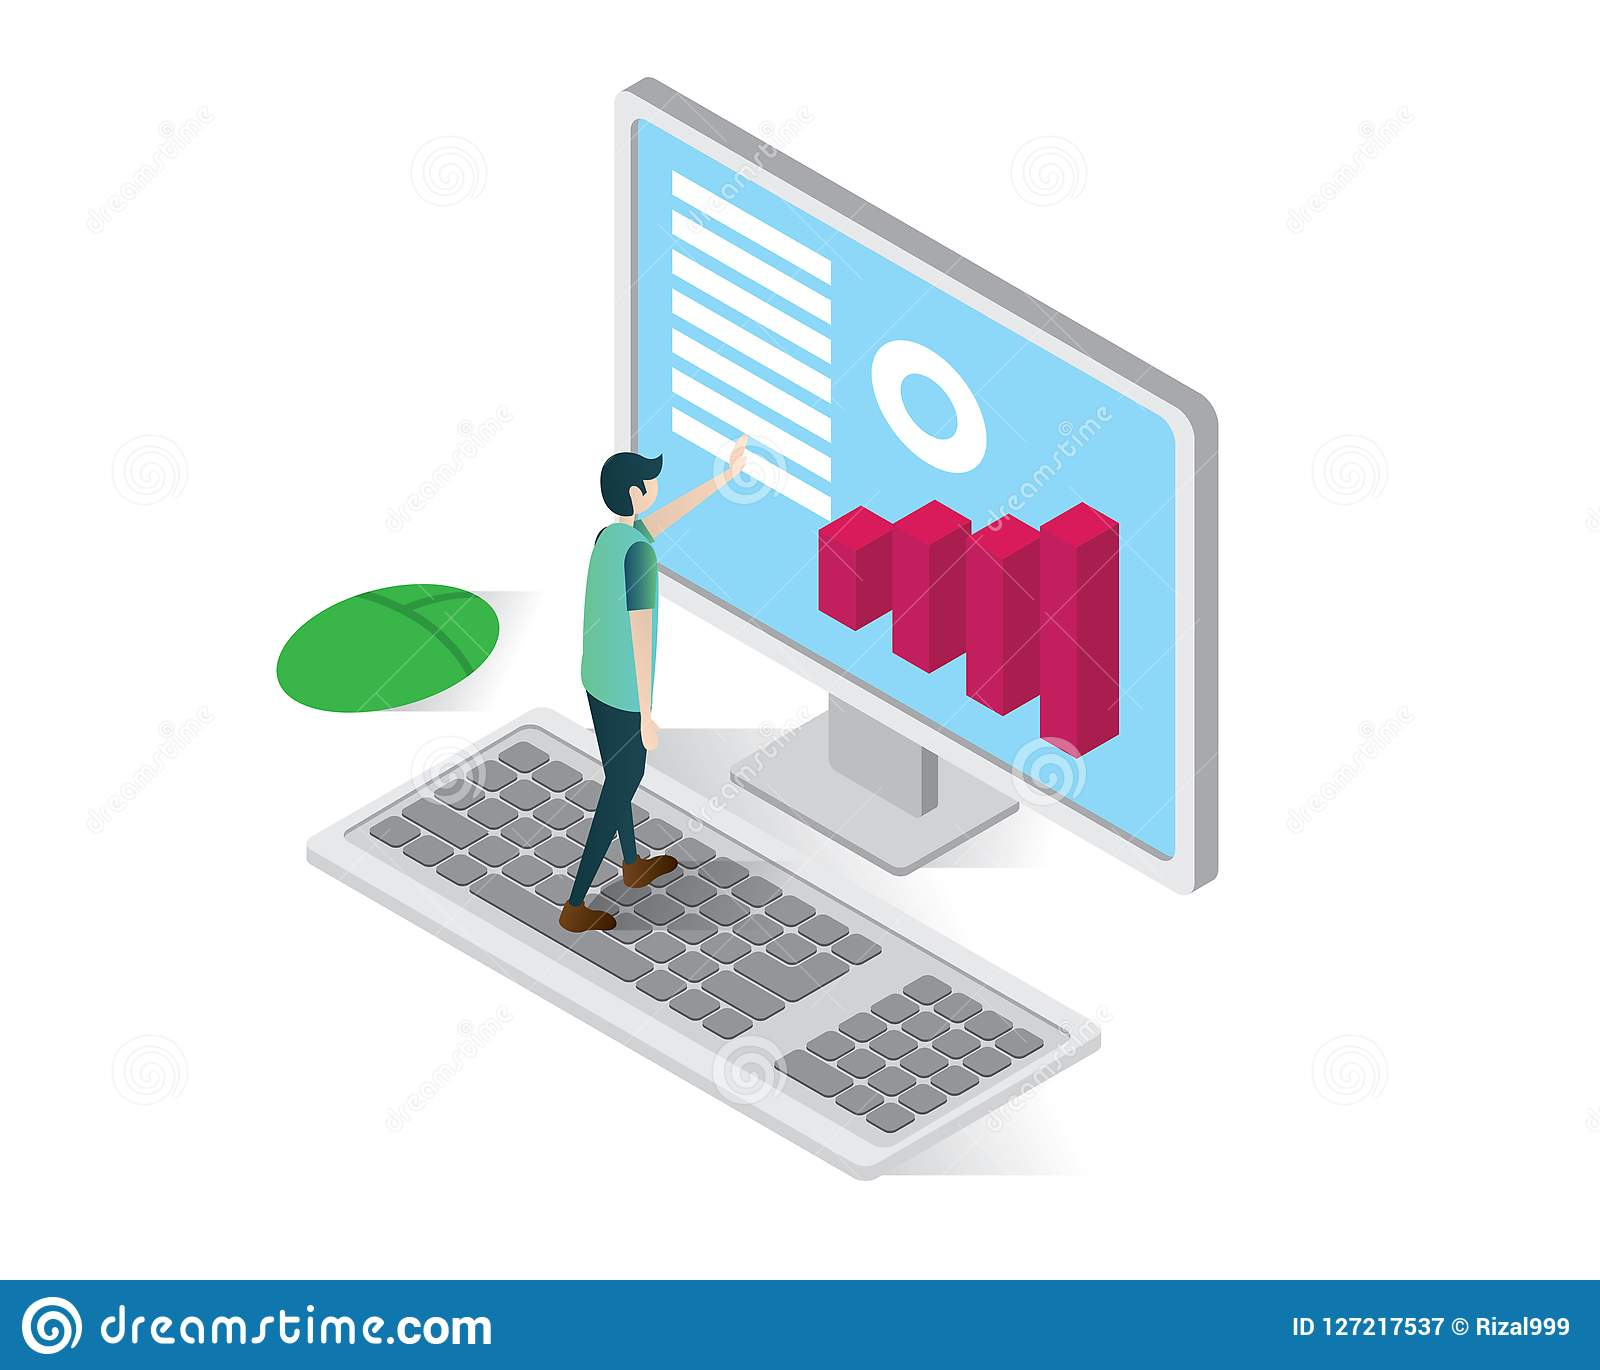 hight resolution of data analysis isometric icons concept business computer illustration vector diagram on computer isometric